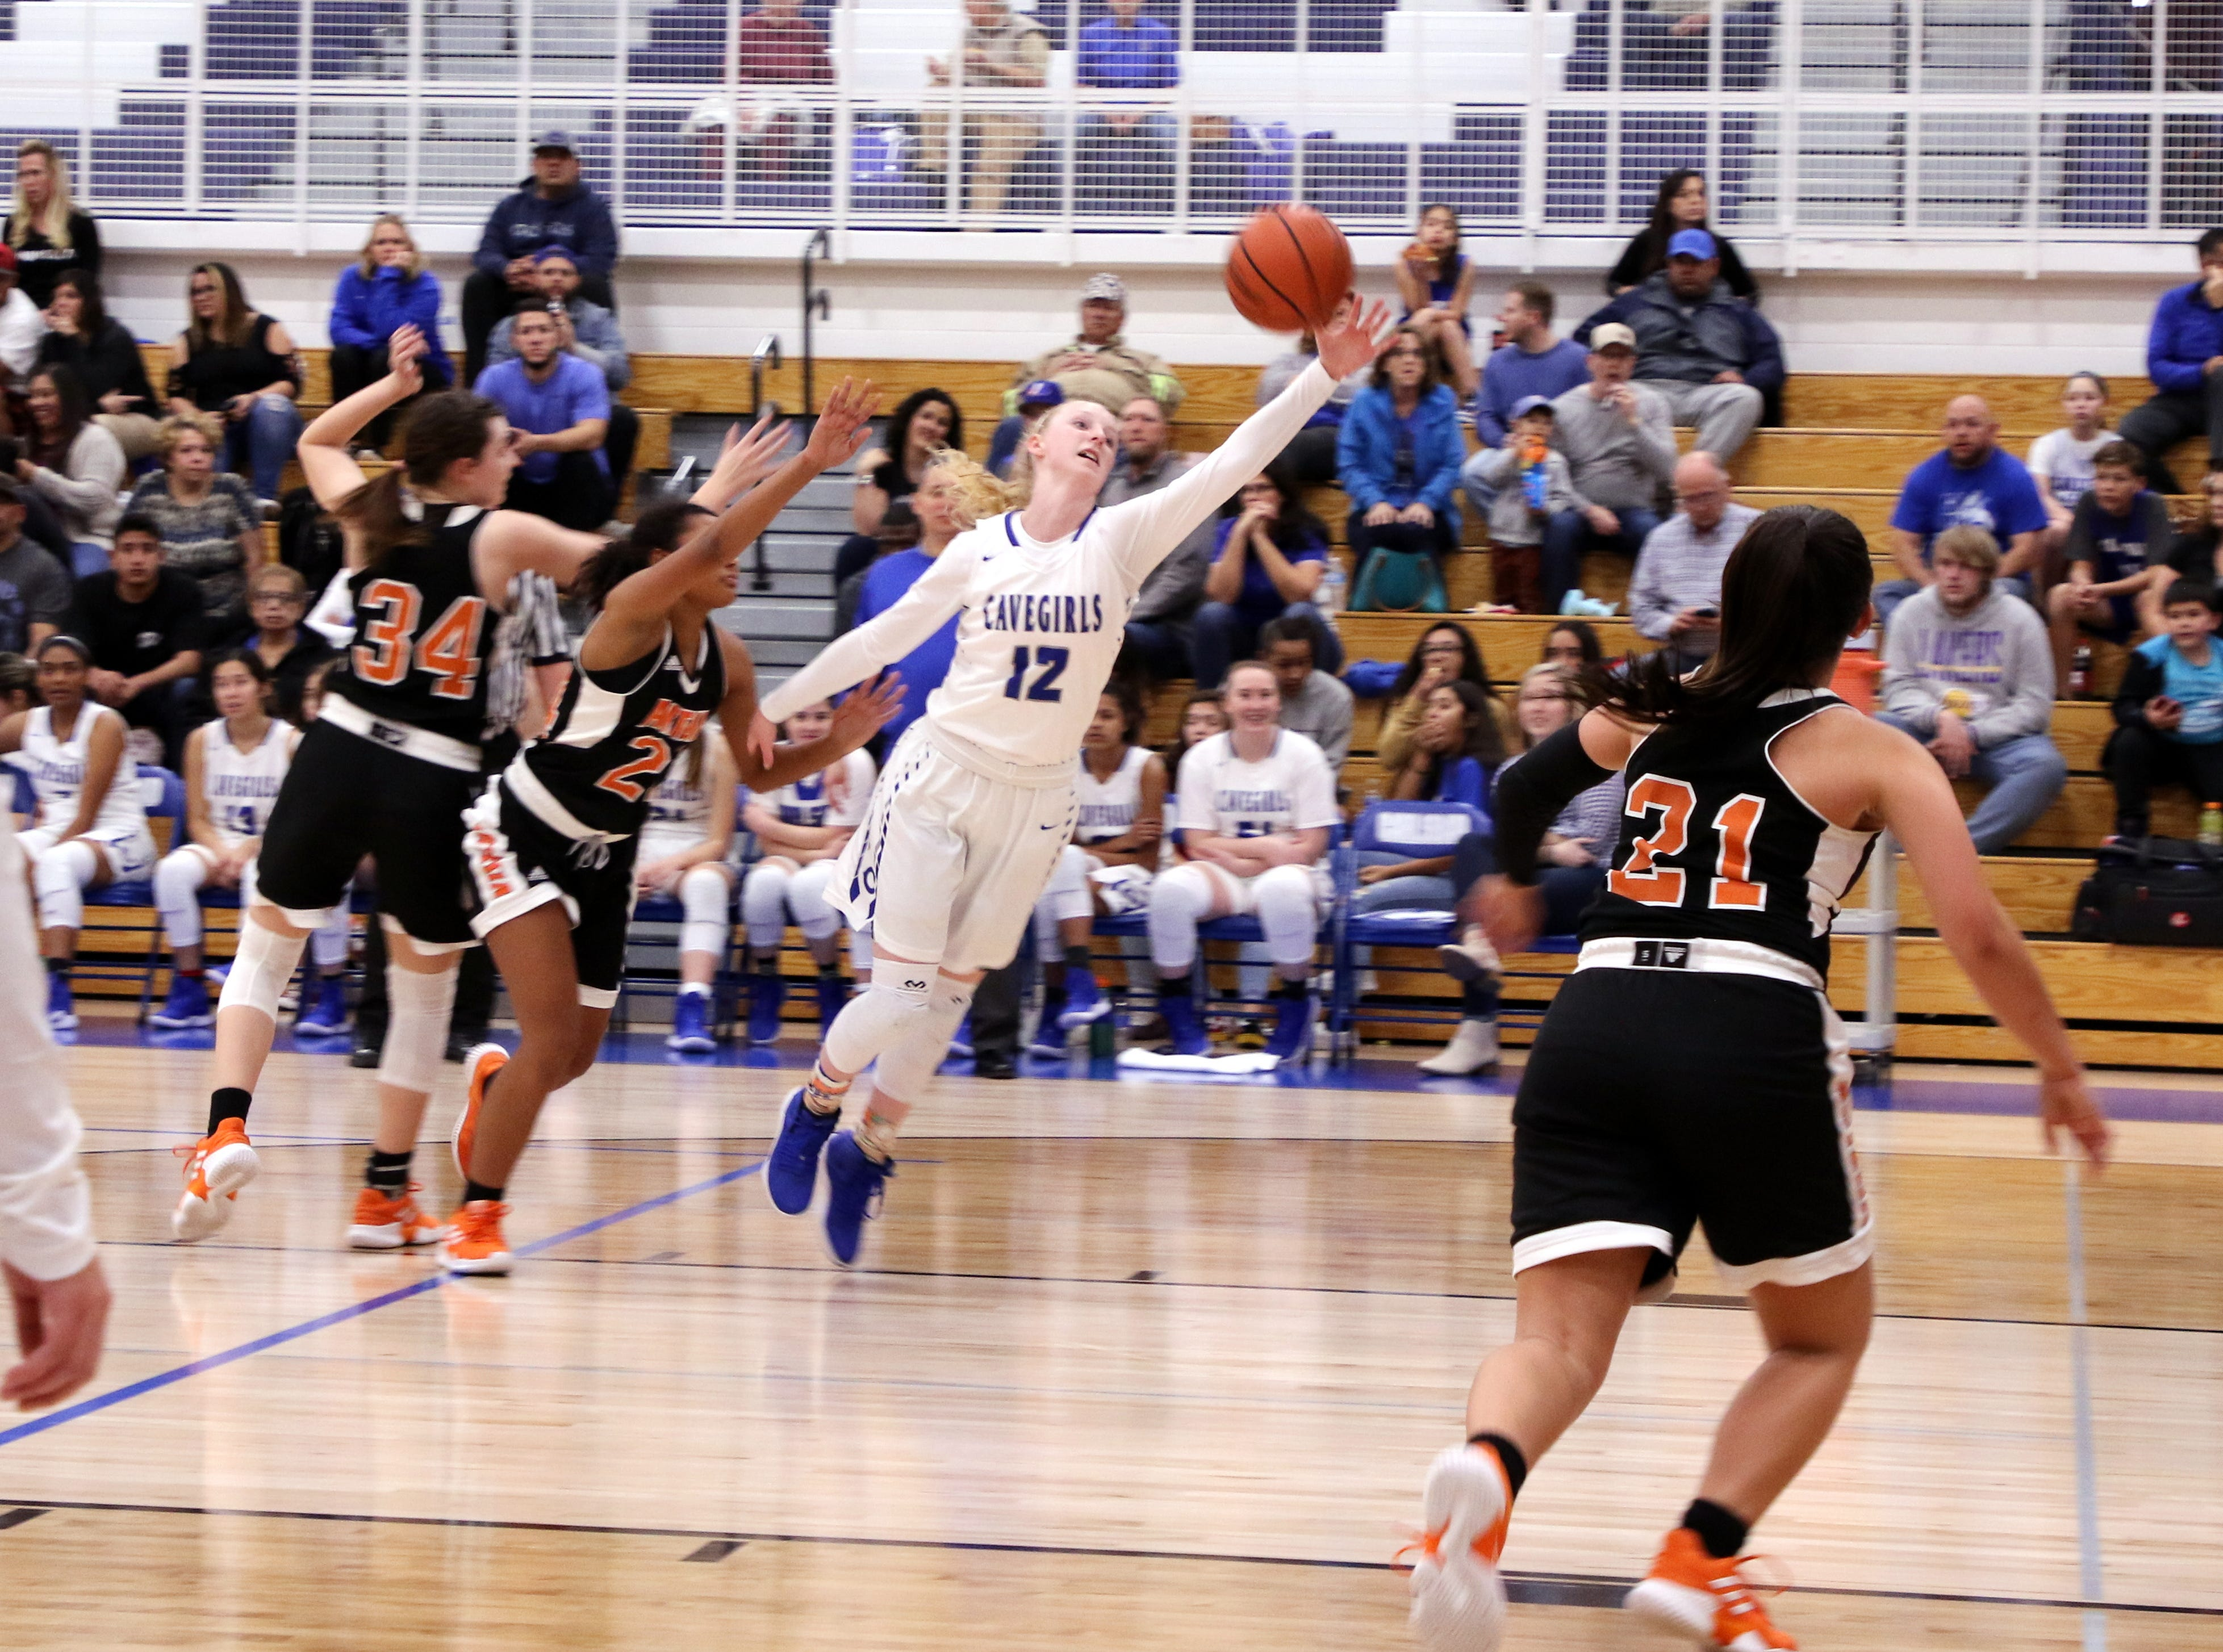 Carlsbad's Carsyn Boswell (12) catches a lob pass in the paint during Tuesday's game against Artesia. Boswell finished with 18 points.